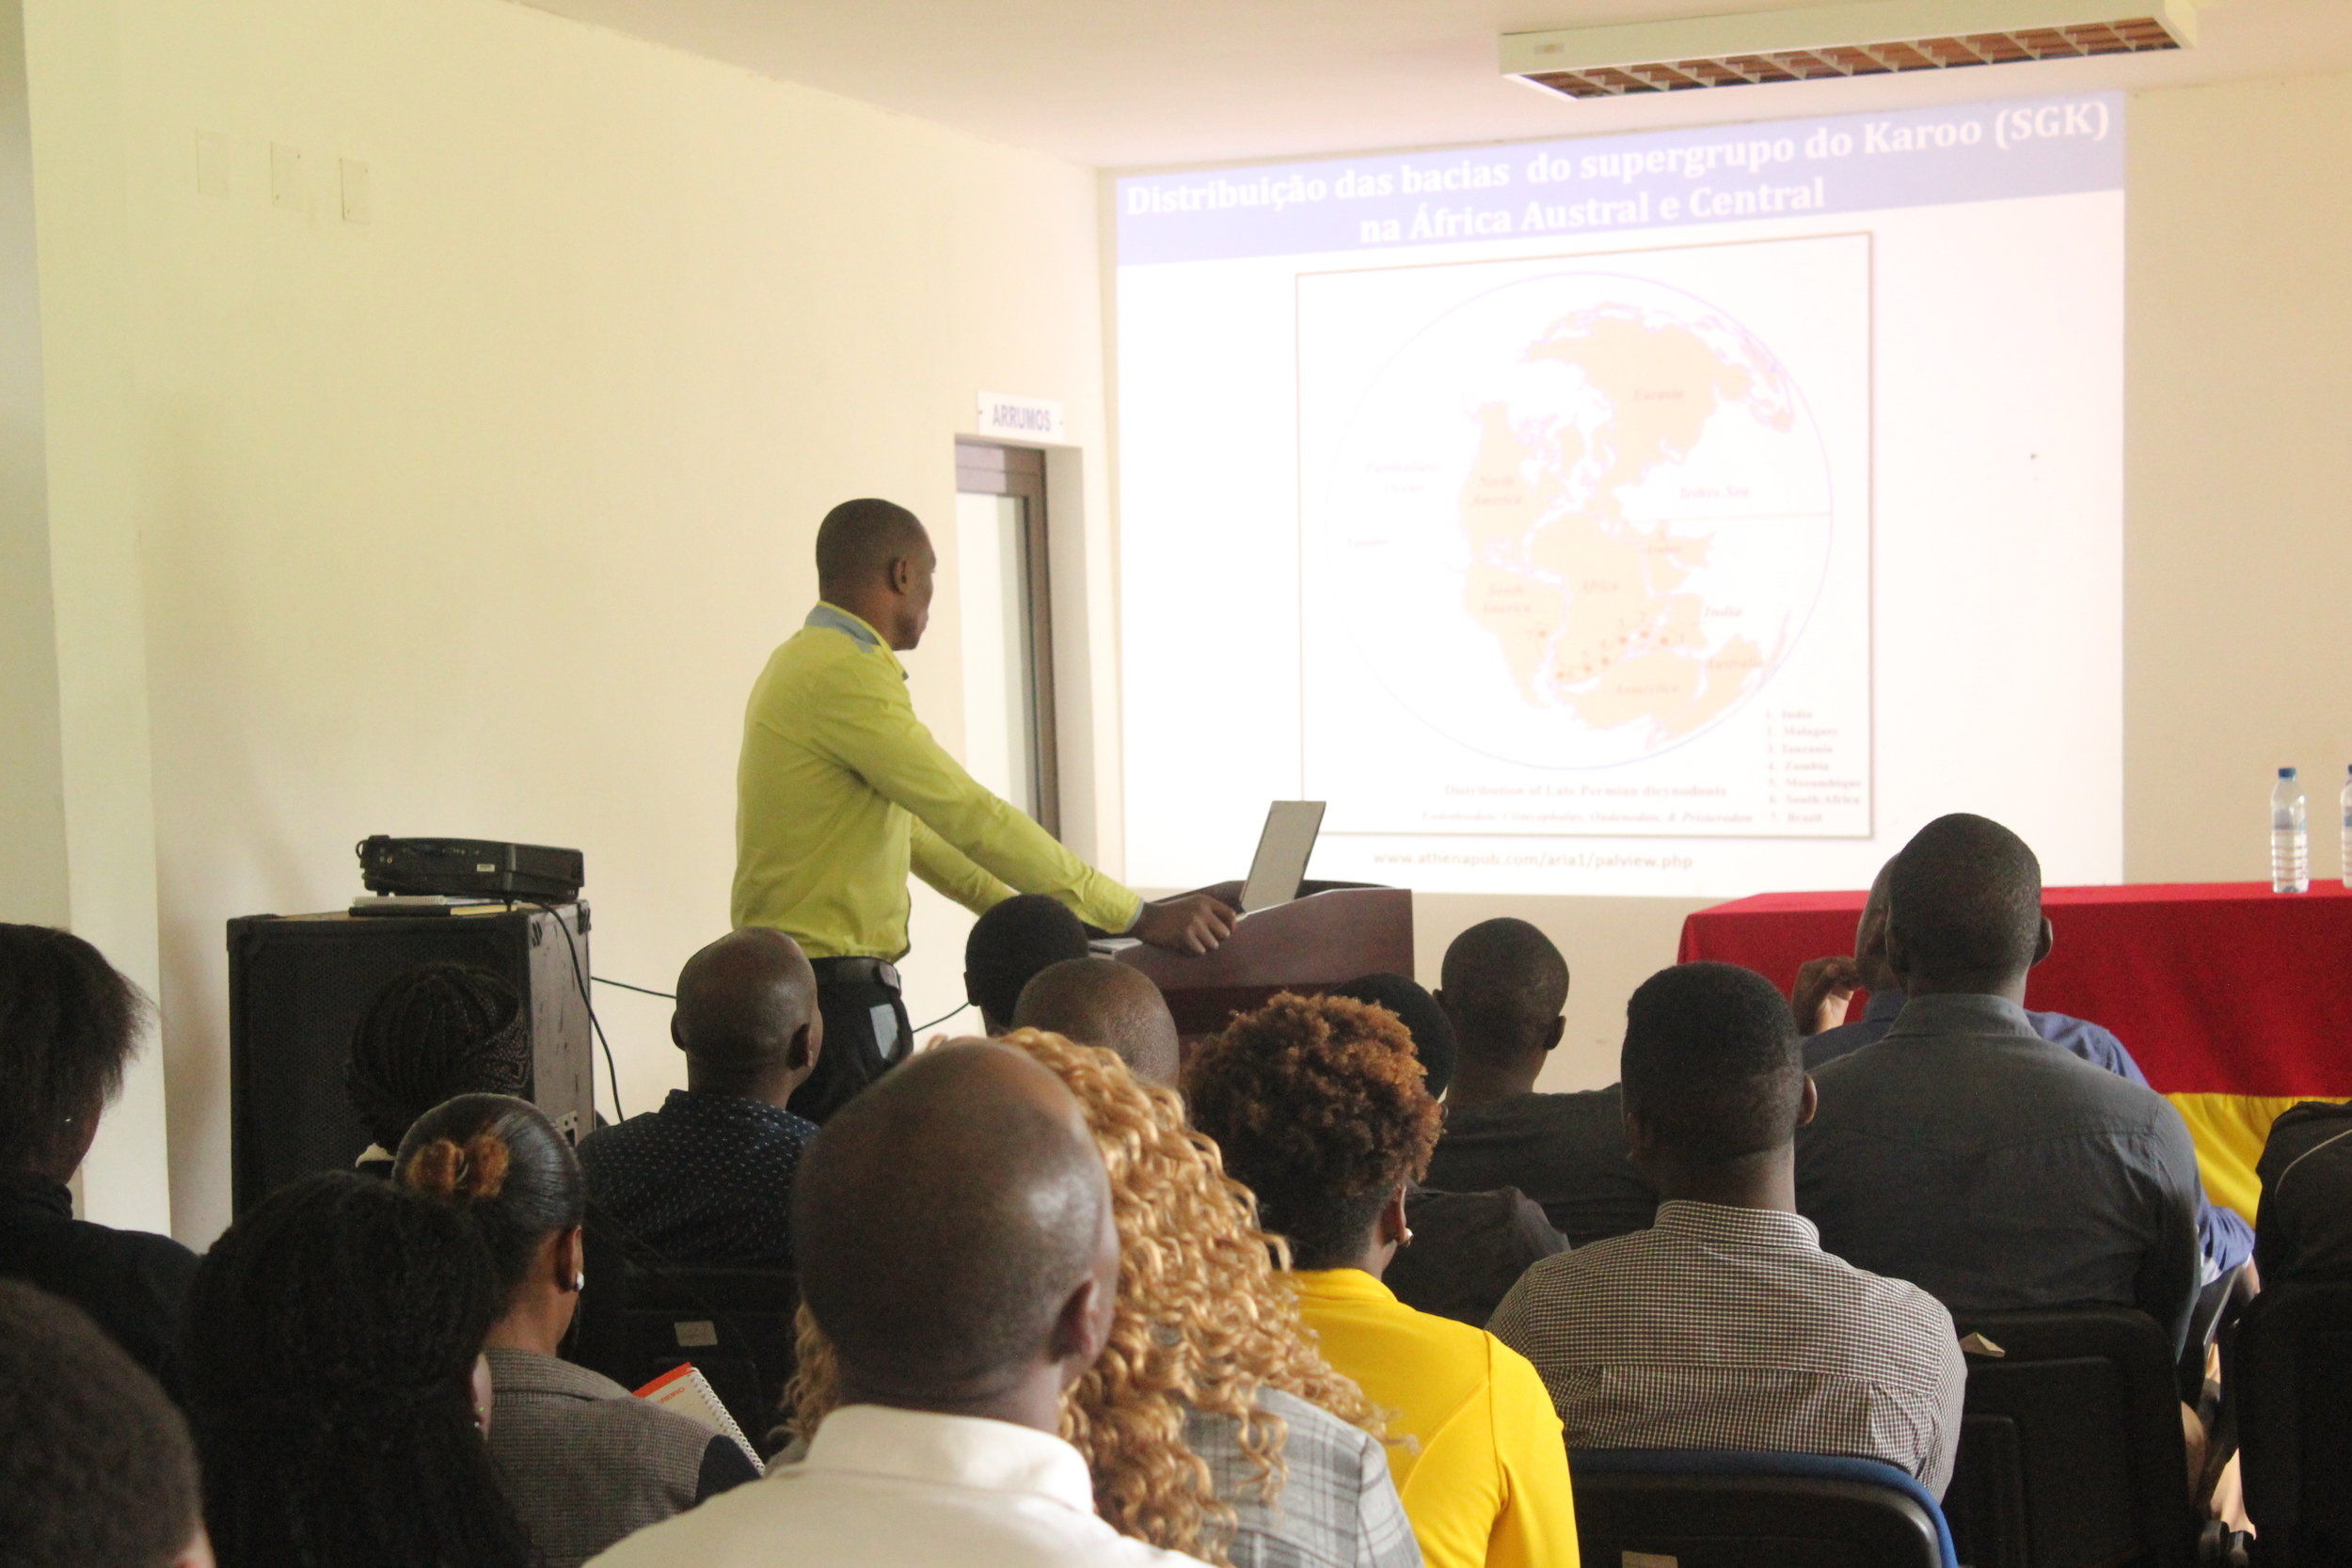 Albano Nhassengo speaks about the Mozambican geological heritage.